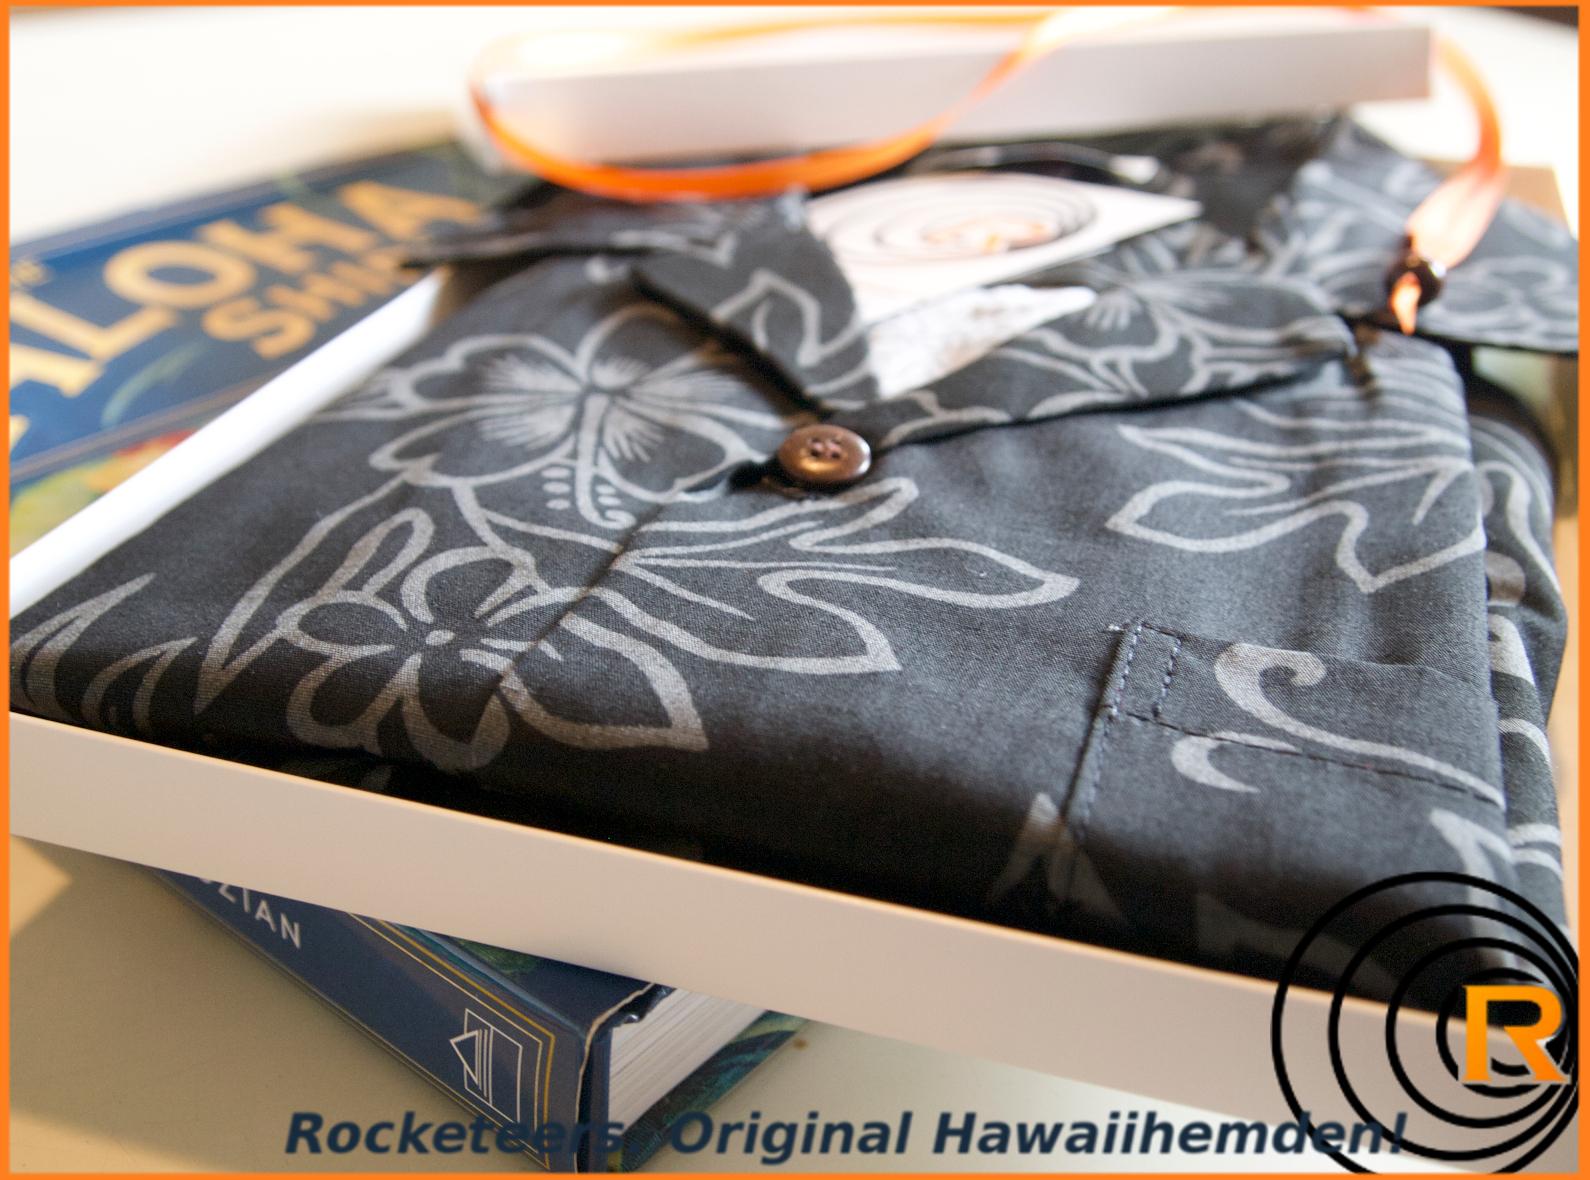 Original Hawaiihemd -Luau-